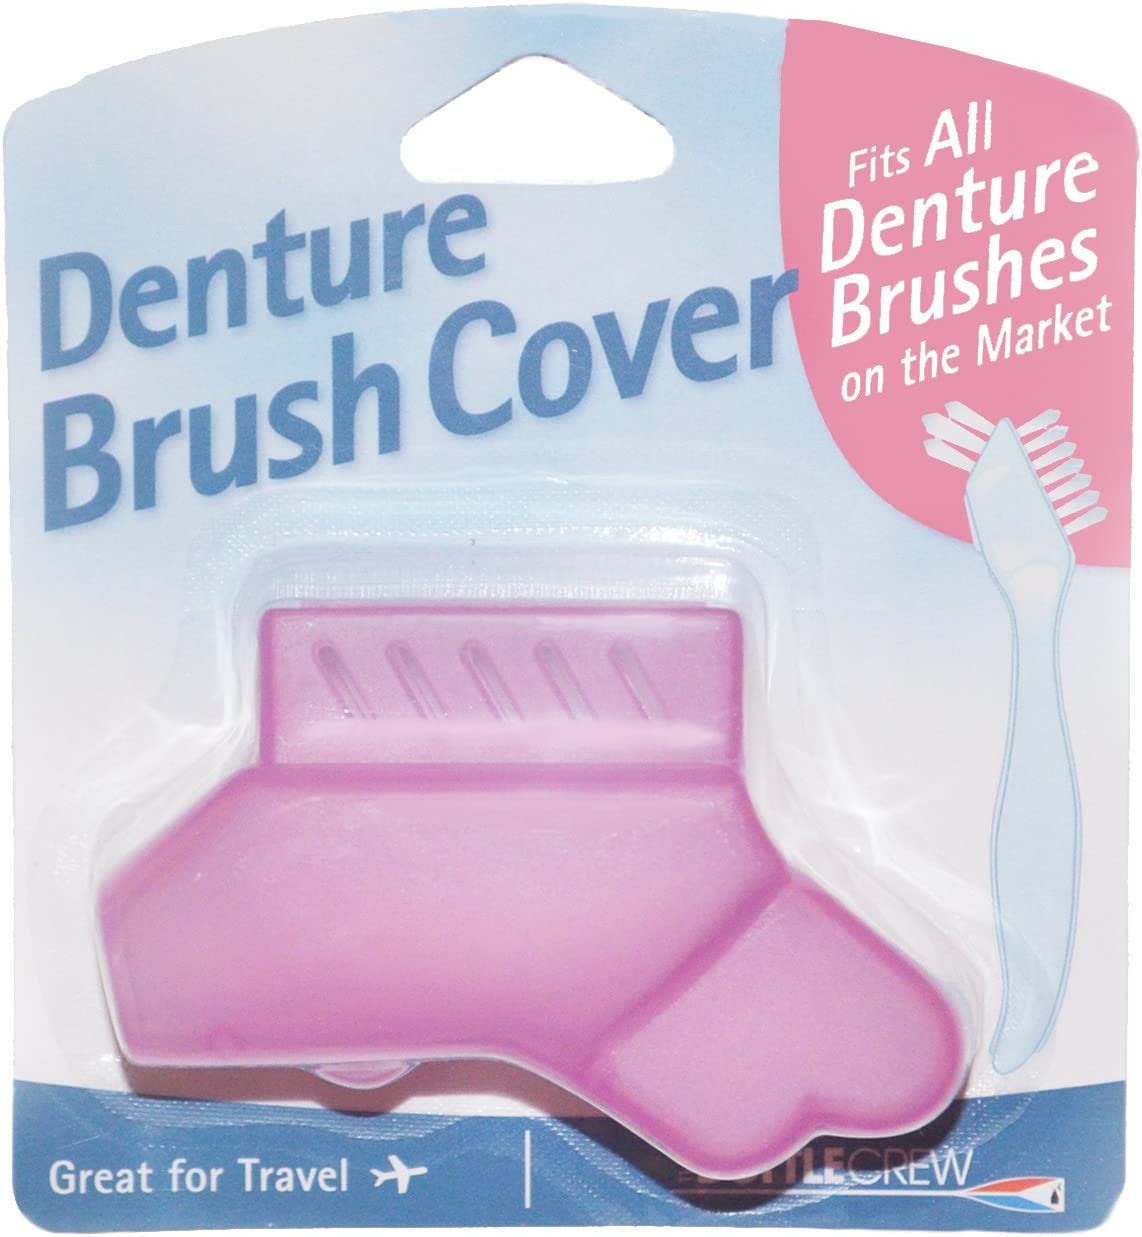 Denture Brush Cover - Fits All Denture Brushes: Home & Kitchen